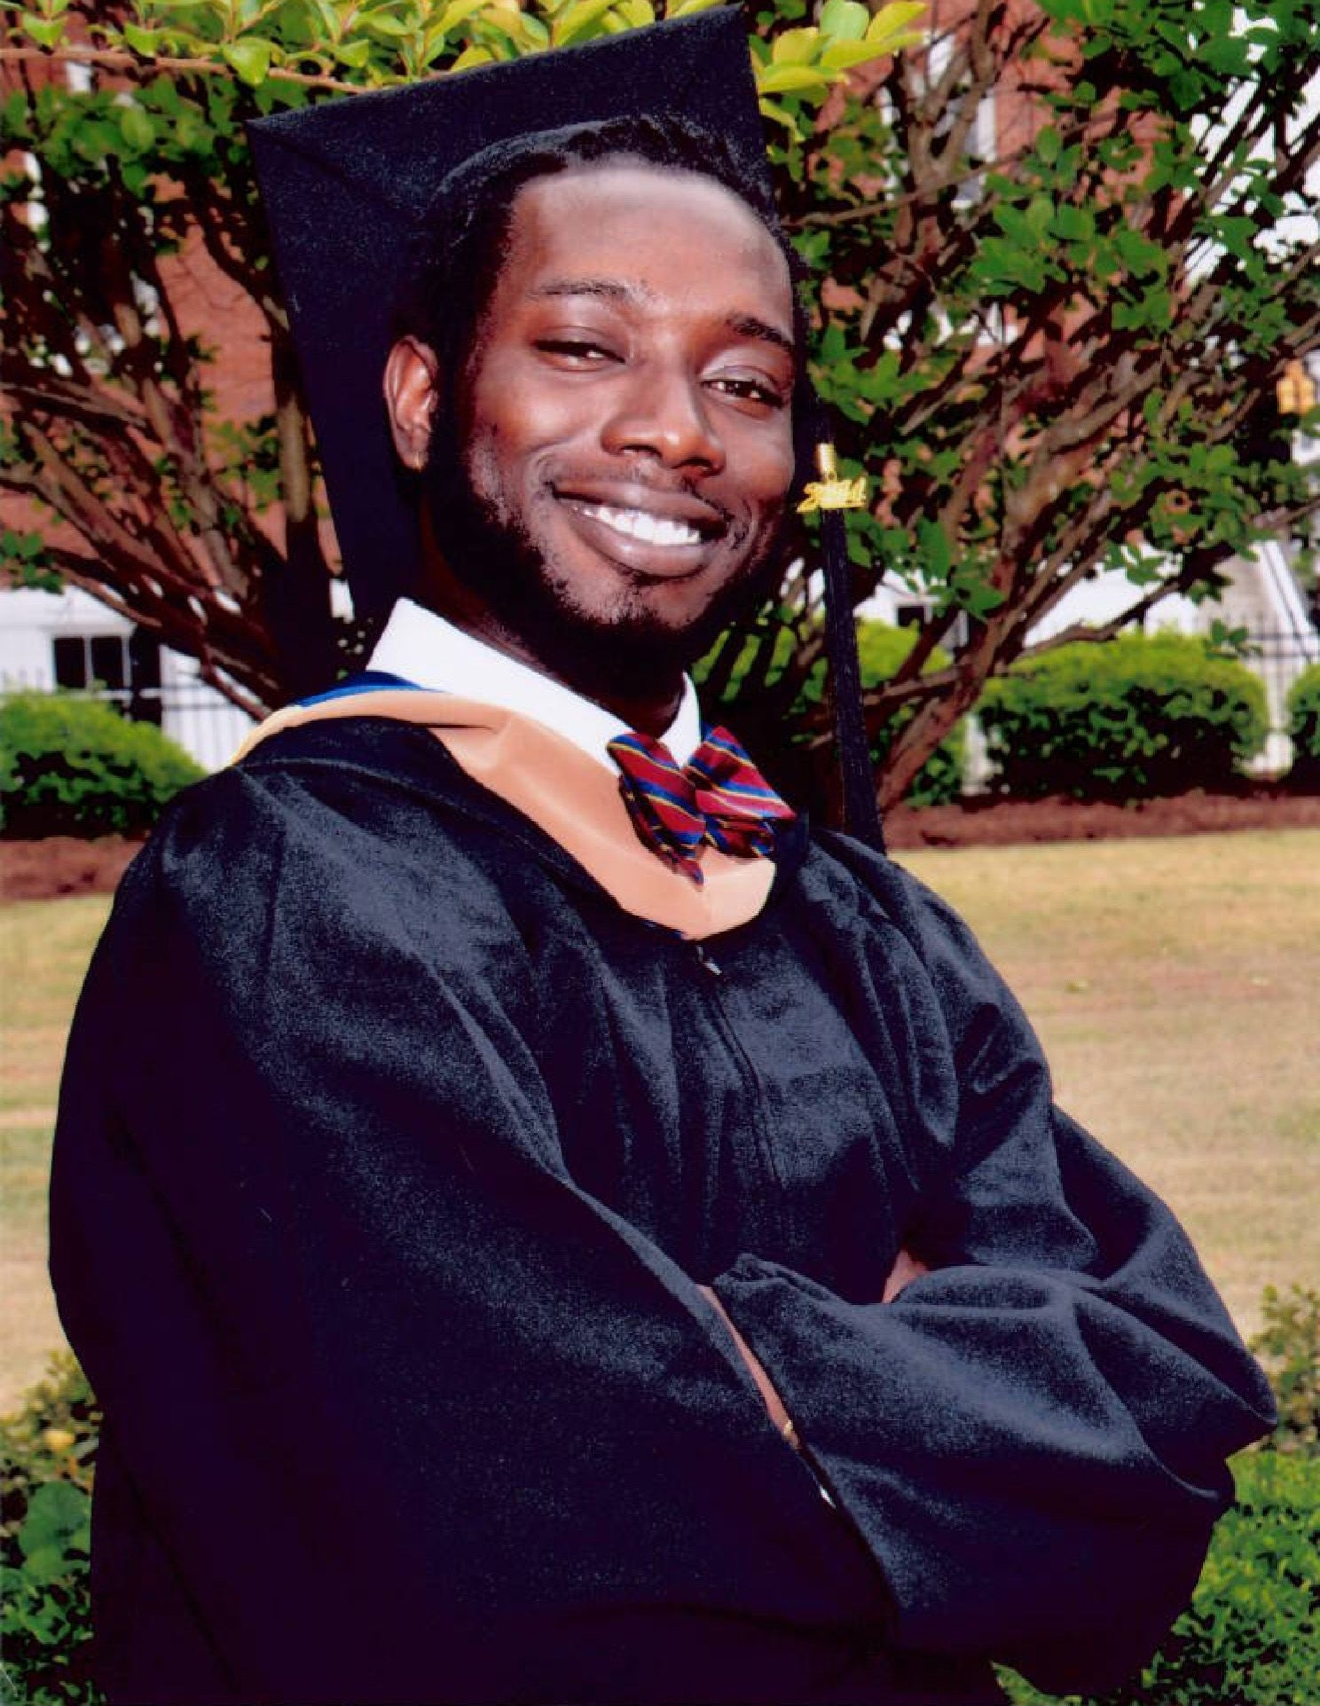 FILE-In this undated file photo made available by Anita Brewer Dantzler shows Tywanza Sanders on the day of his graduation from Allen University in Columbia, SC. Sanders was killed byDylann Roof while attending a Bible study at The Emanuel African Methodist Episcopal Church in Charleston, SC., Wednesday, June  17, 2015. During Dylan Roof's sentencing for friends and family members walked up to the witness stand and testified about the nine black church members gunned down during a Bible study. The testimony came during the sentencing phase of Dylann Roof's death penalty trial. (Anita Brewer Dantzler via AP, File)